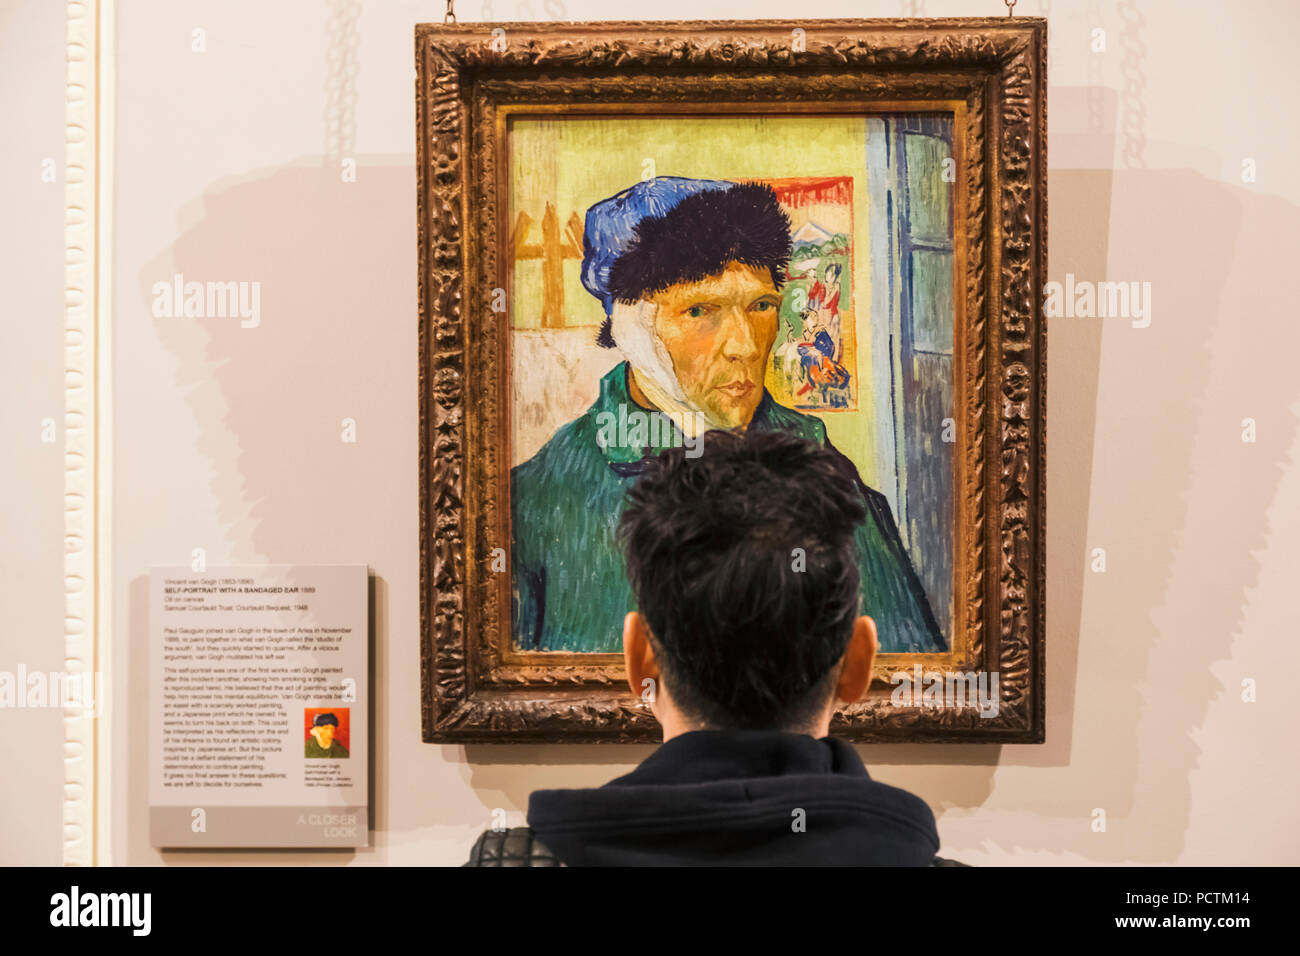 Painting titled 'Self Portrait With A Bandaged Ear' by Vincent van Gogh dated 1889 - Stock Image